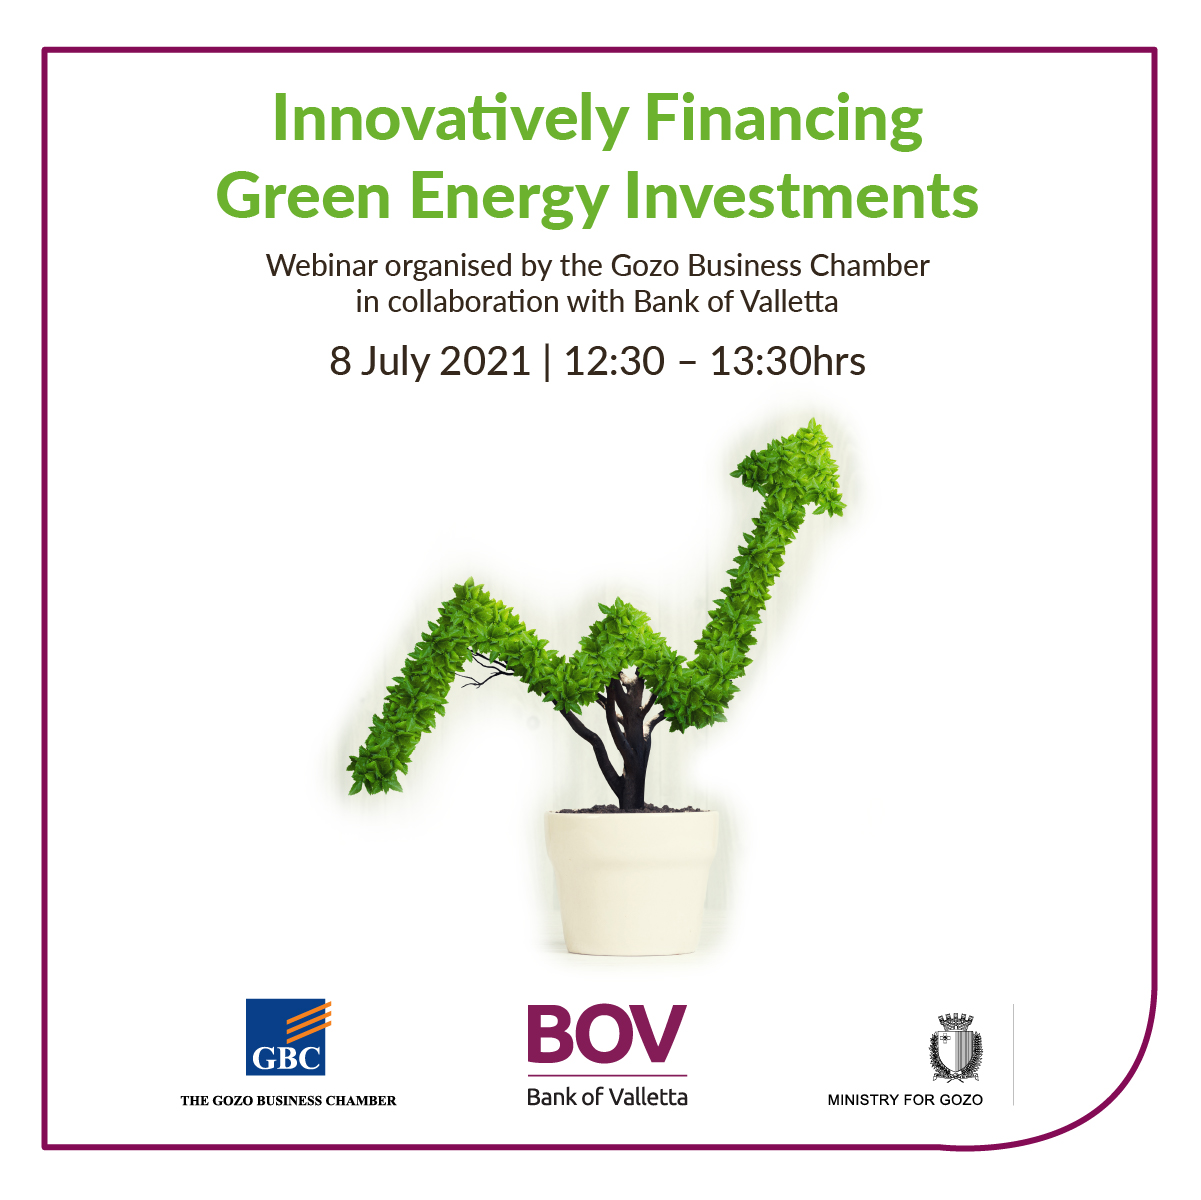 Financing green energy investments